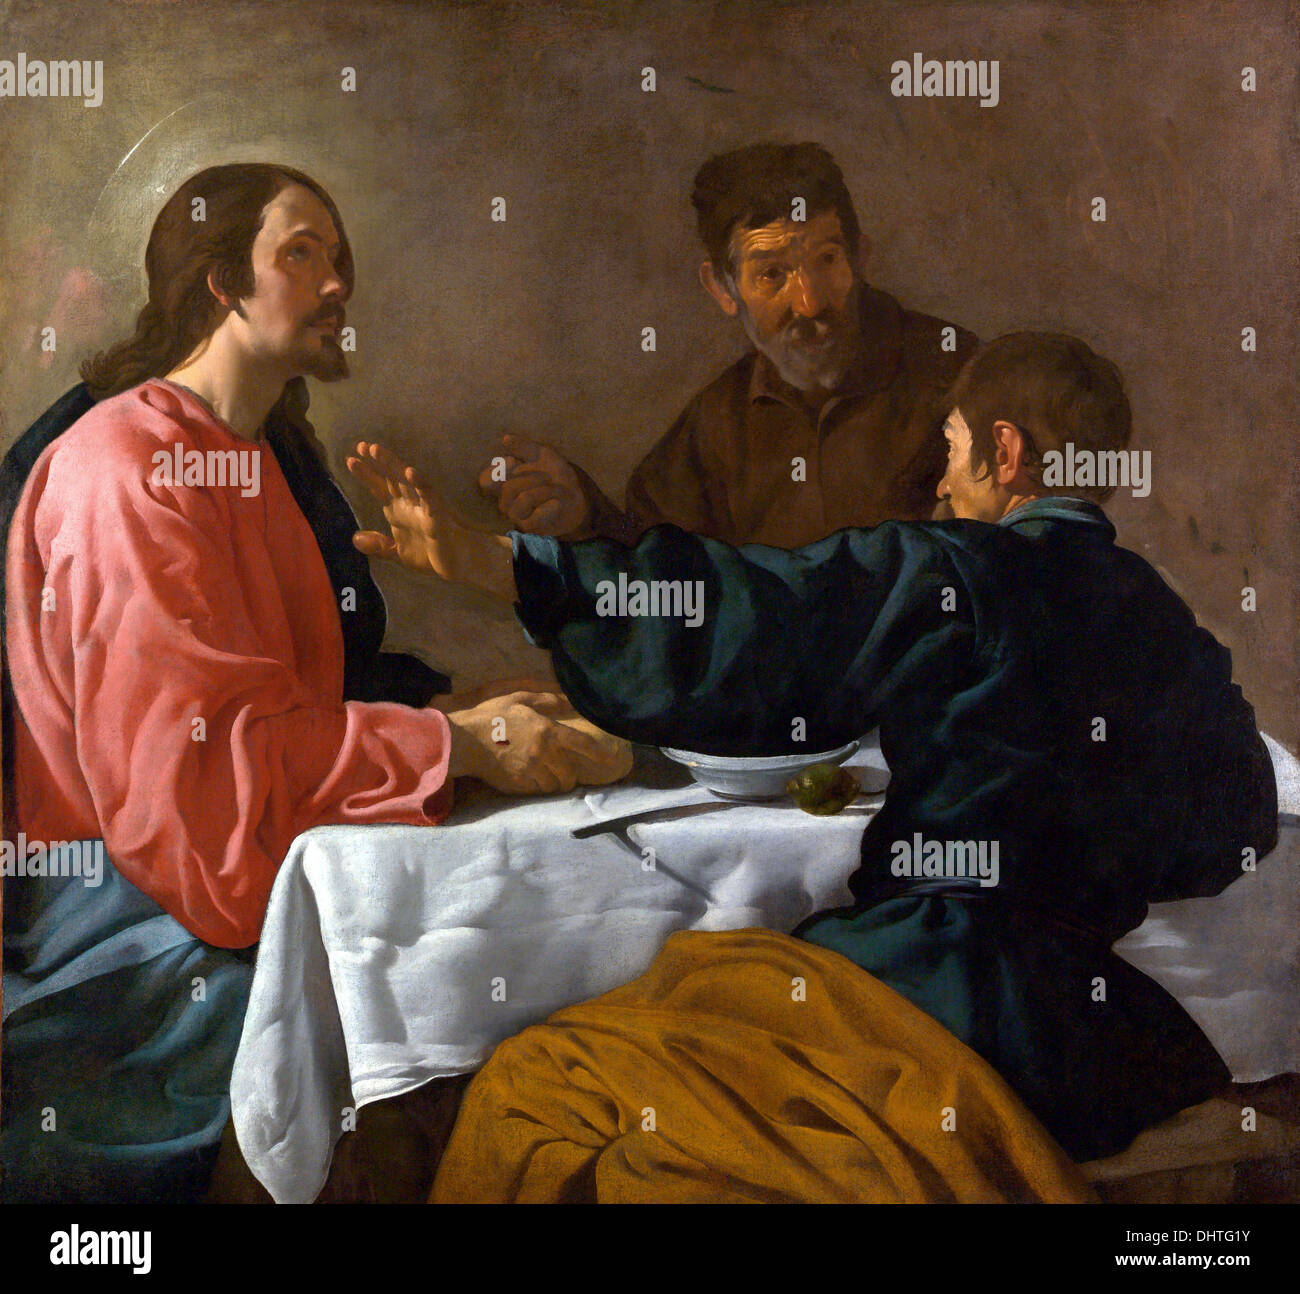 The Supper at Emmaus - by Diego Velázquez, 1623 - Stock Image